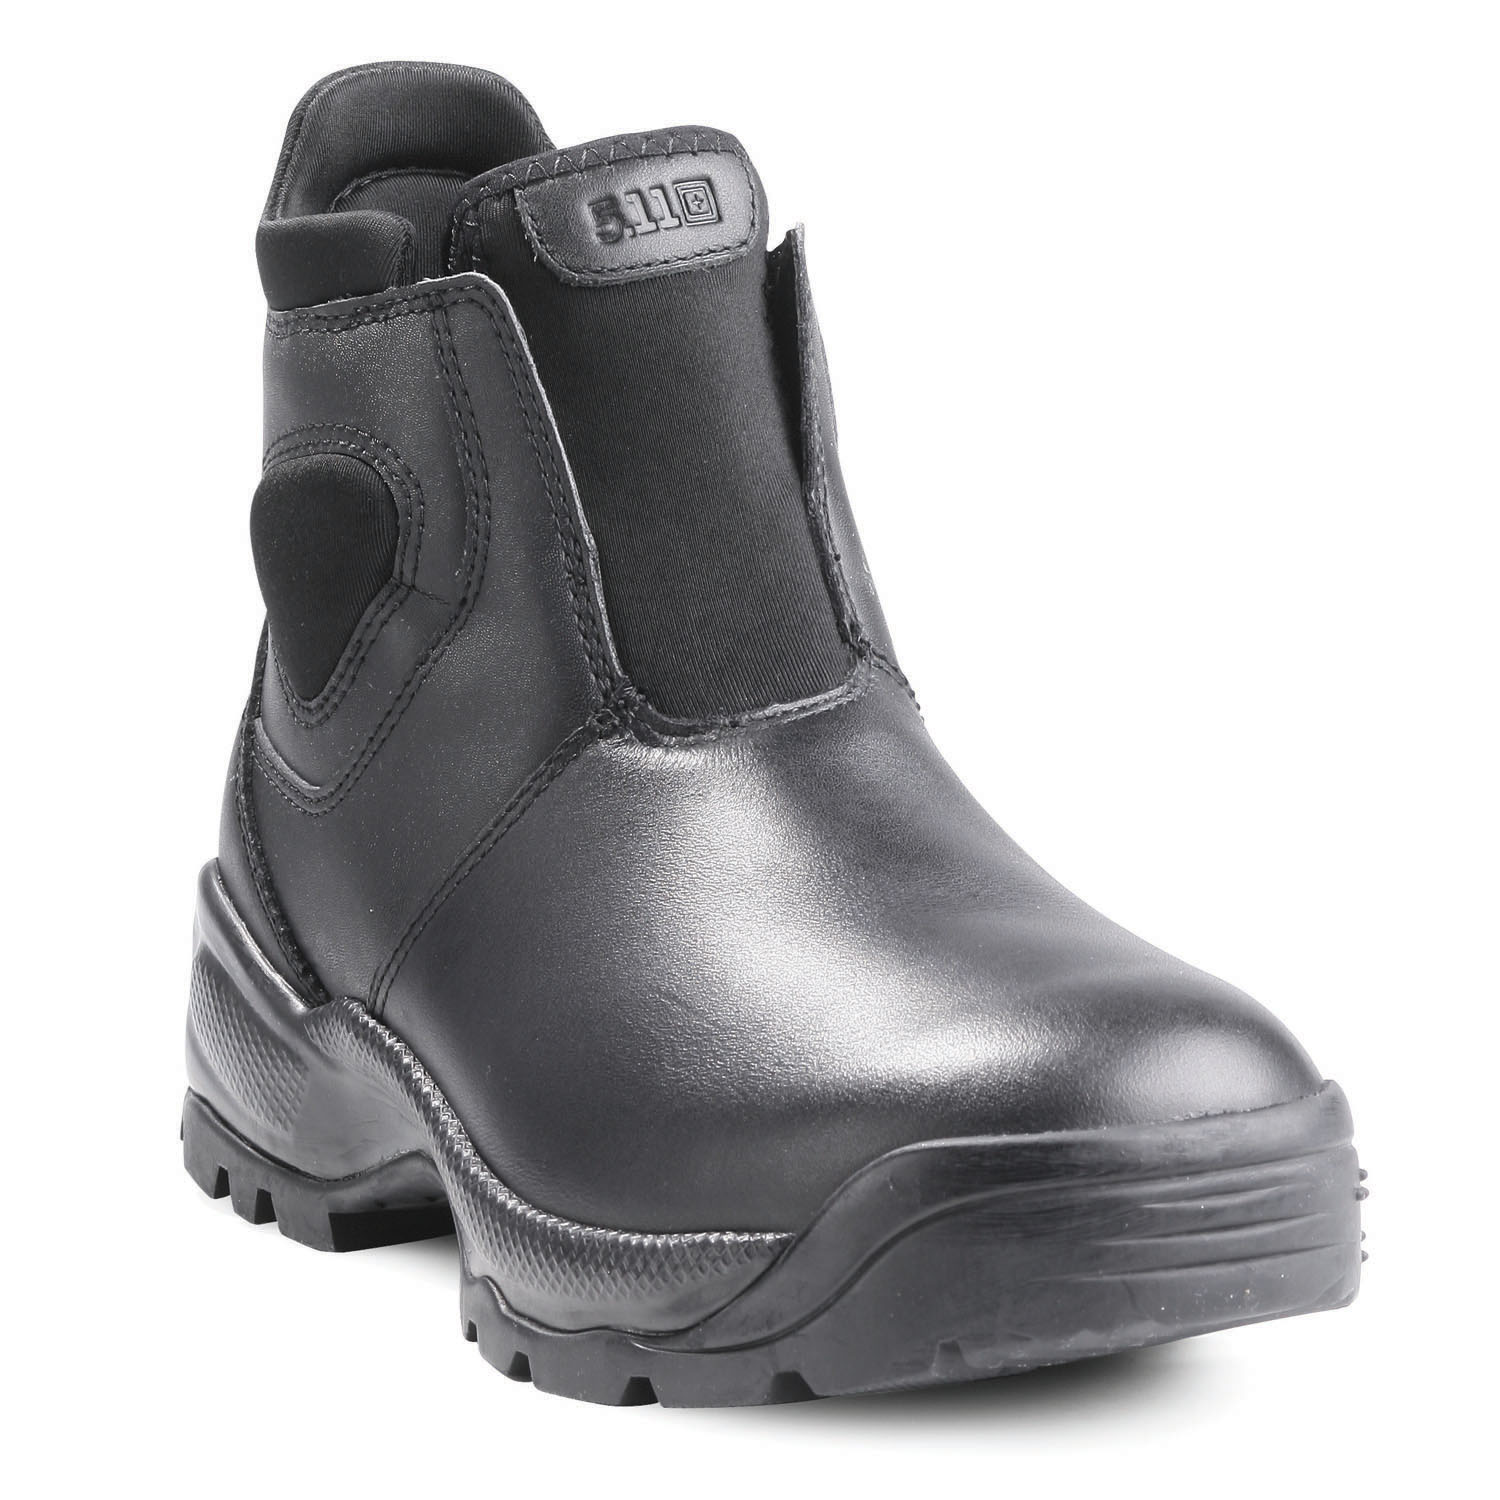 5.11 Tactical Company 2.0 Boot